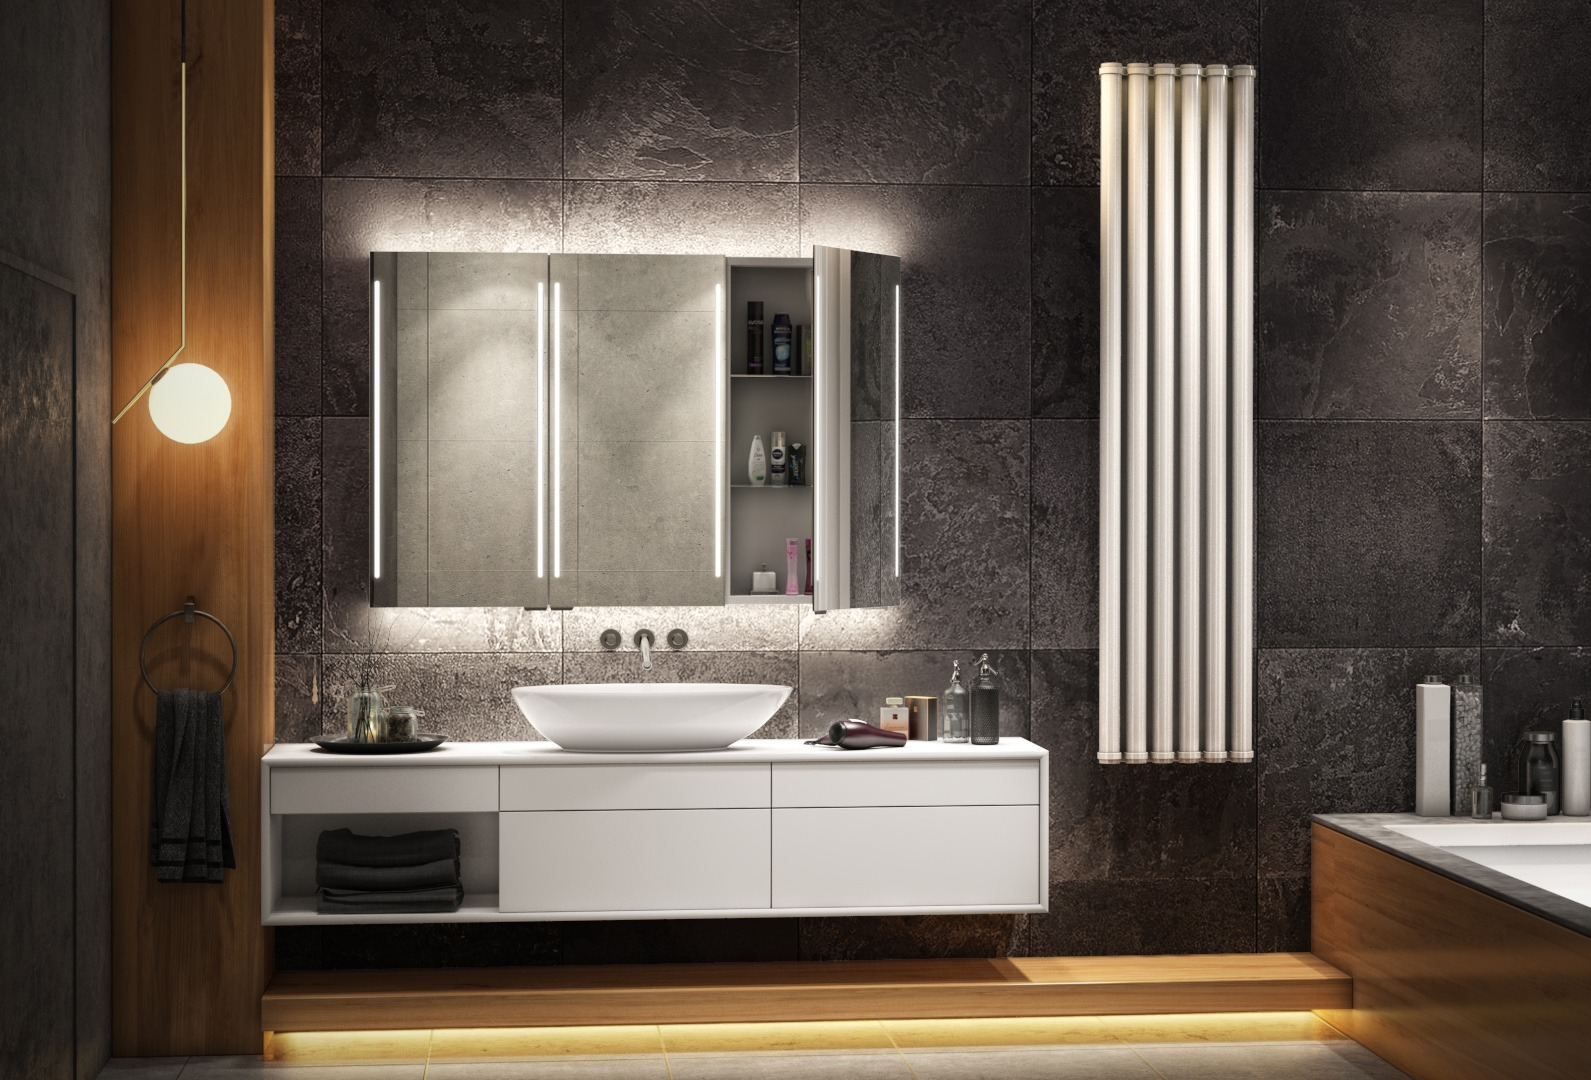 Space is essential for a cabi mirror